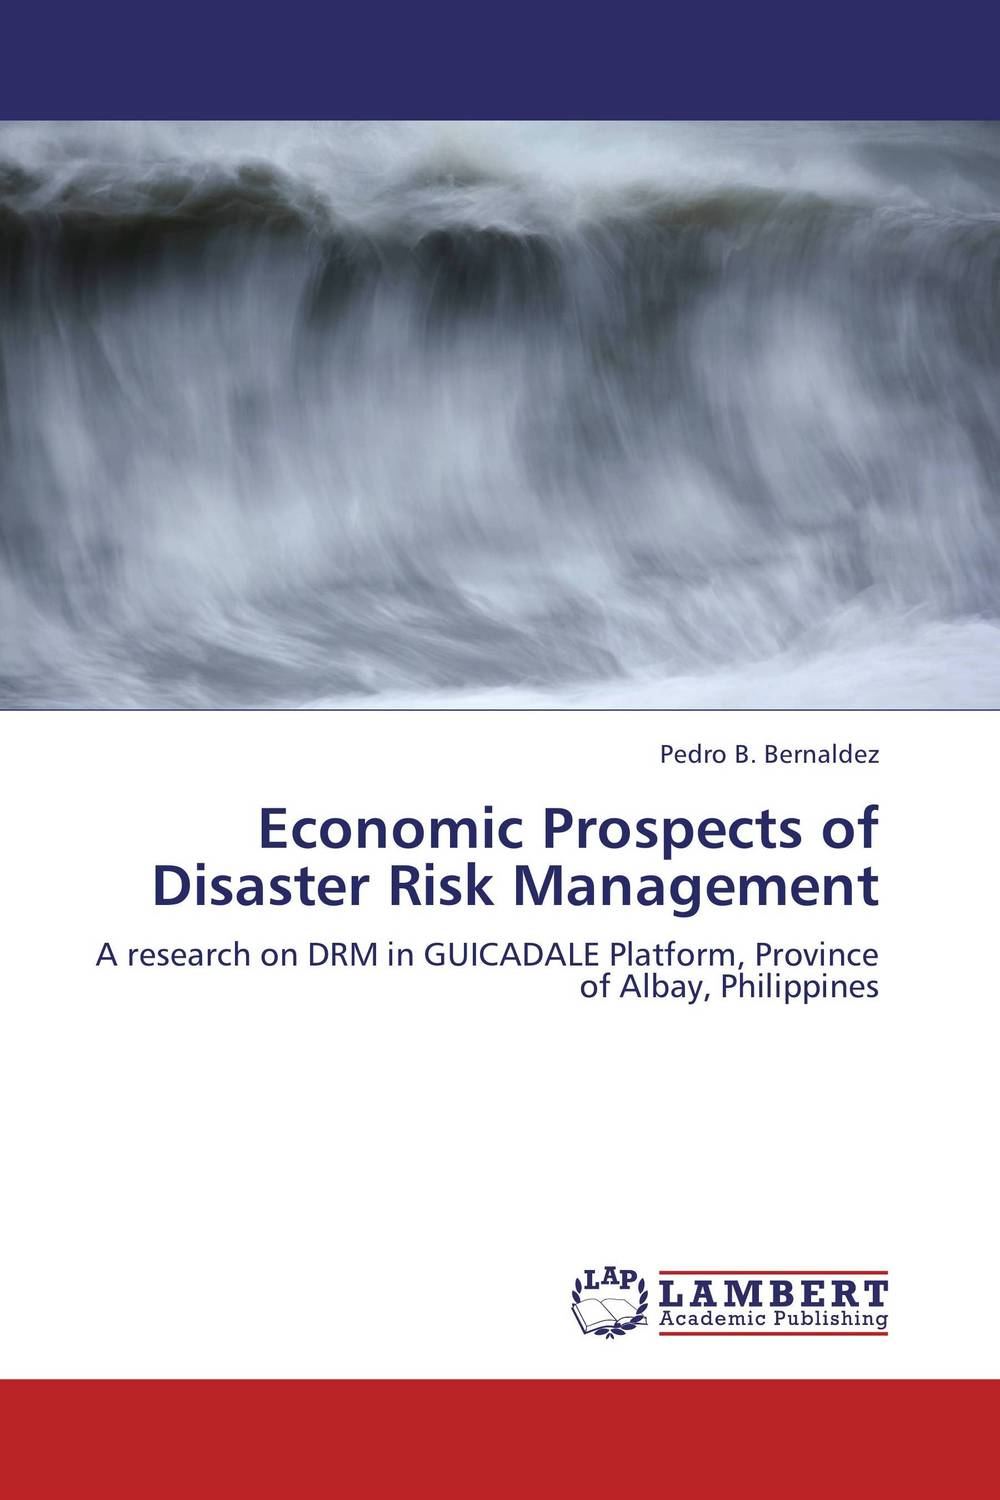 Economic Prospects of Disaster Risk Management claudia baca m project manager s spotlight on change management